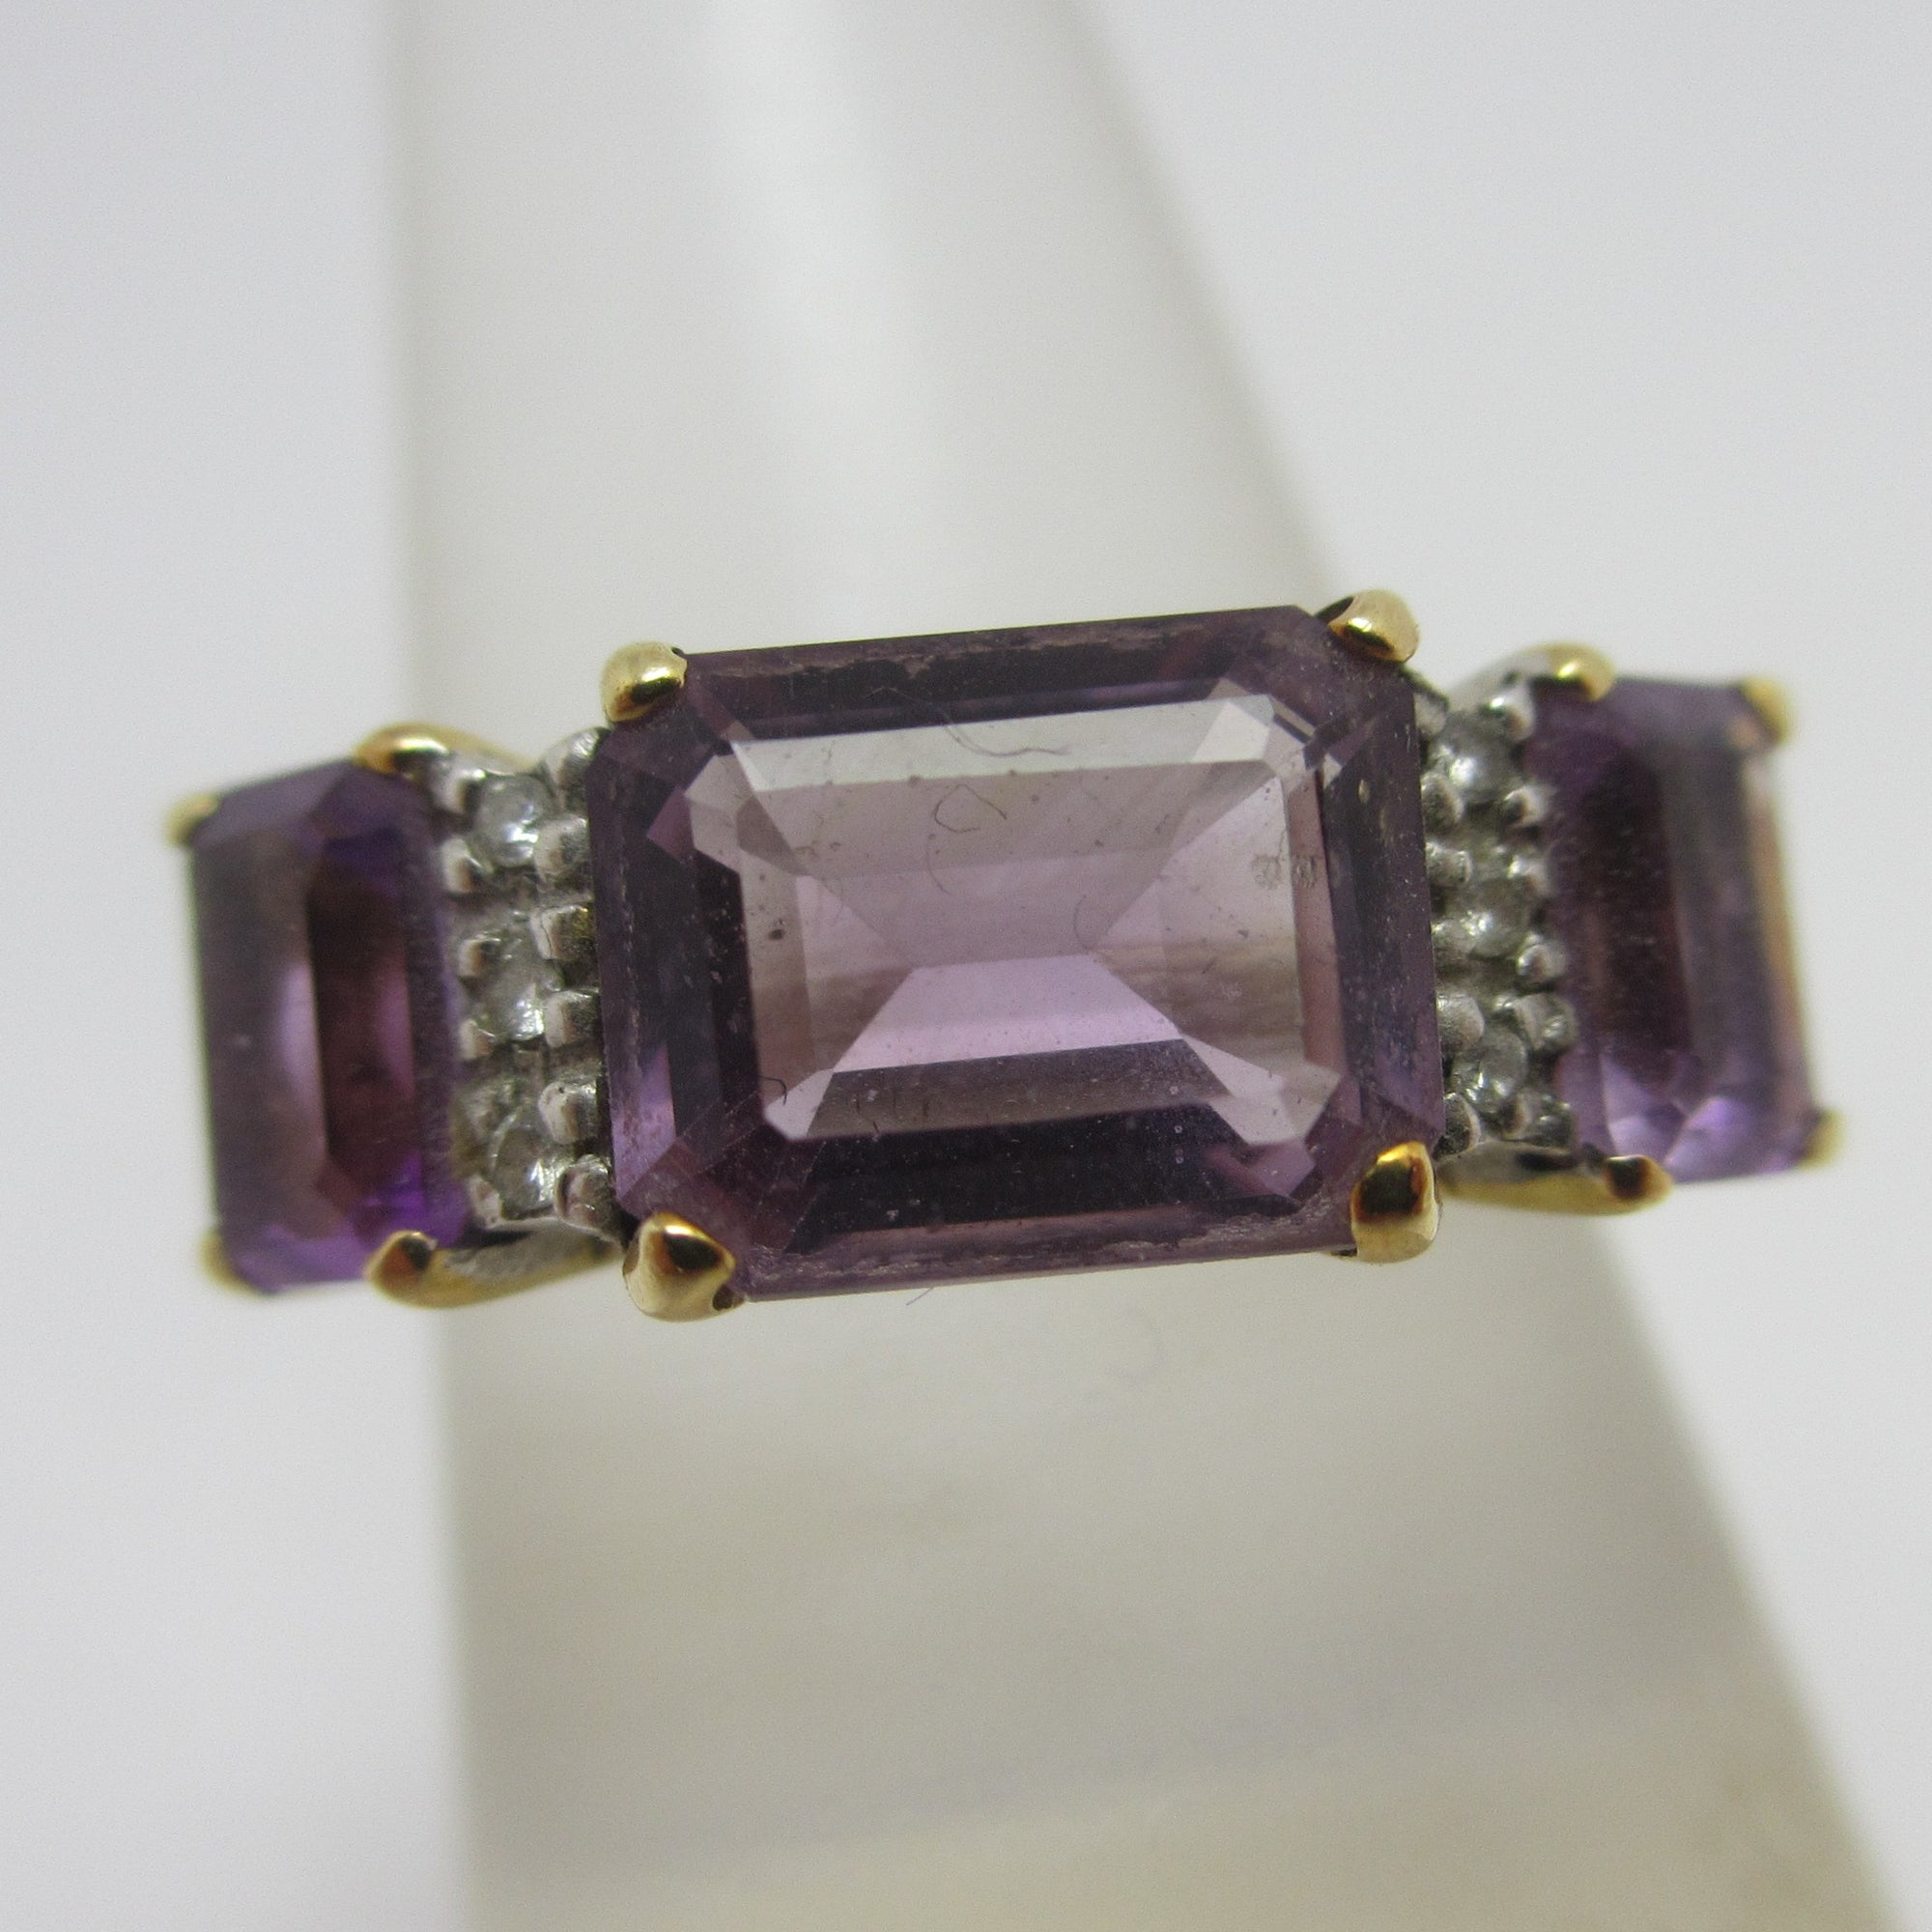 Baguette Cut Amethyst & Diamond 14k Gold Ring Vintage c1980.